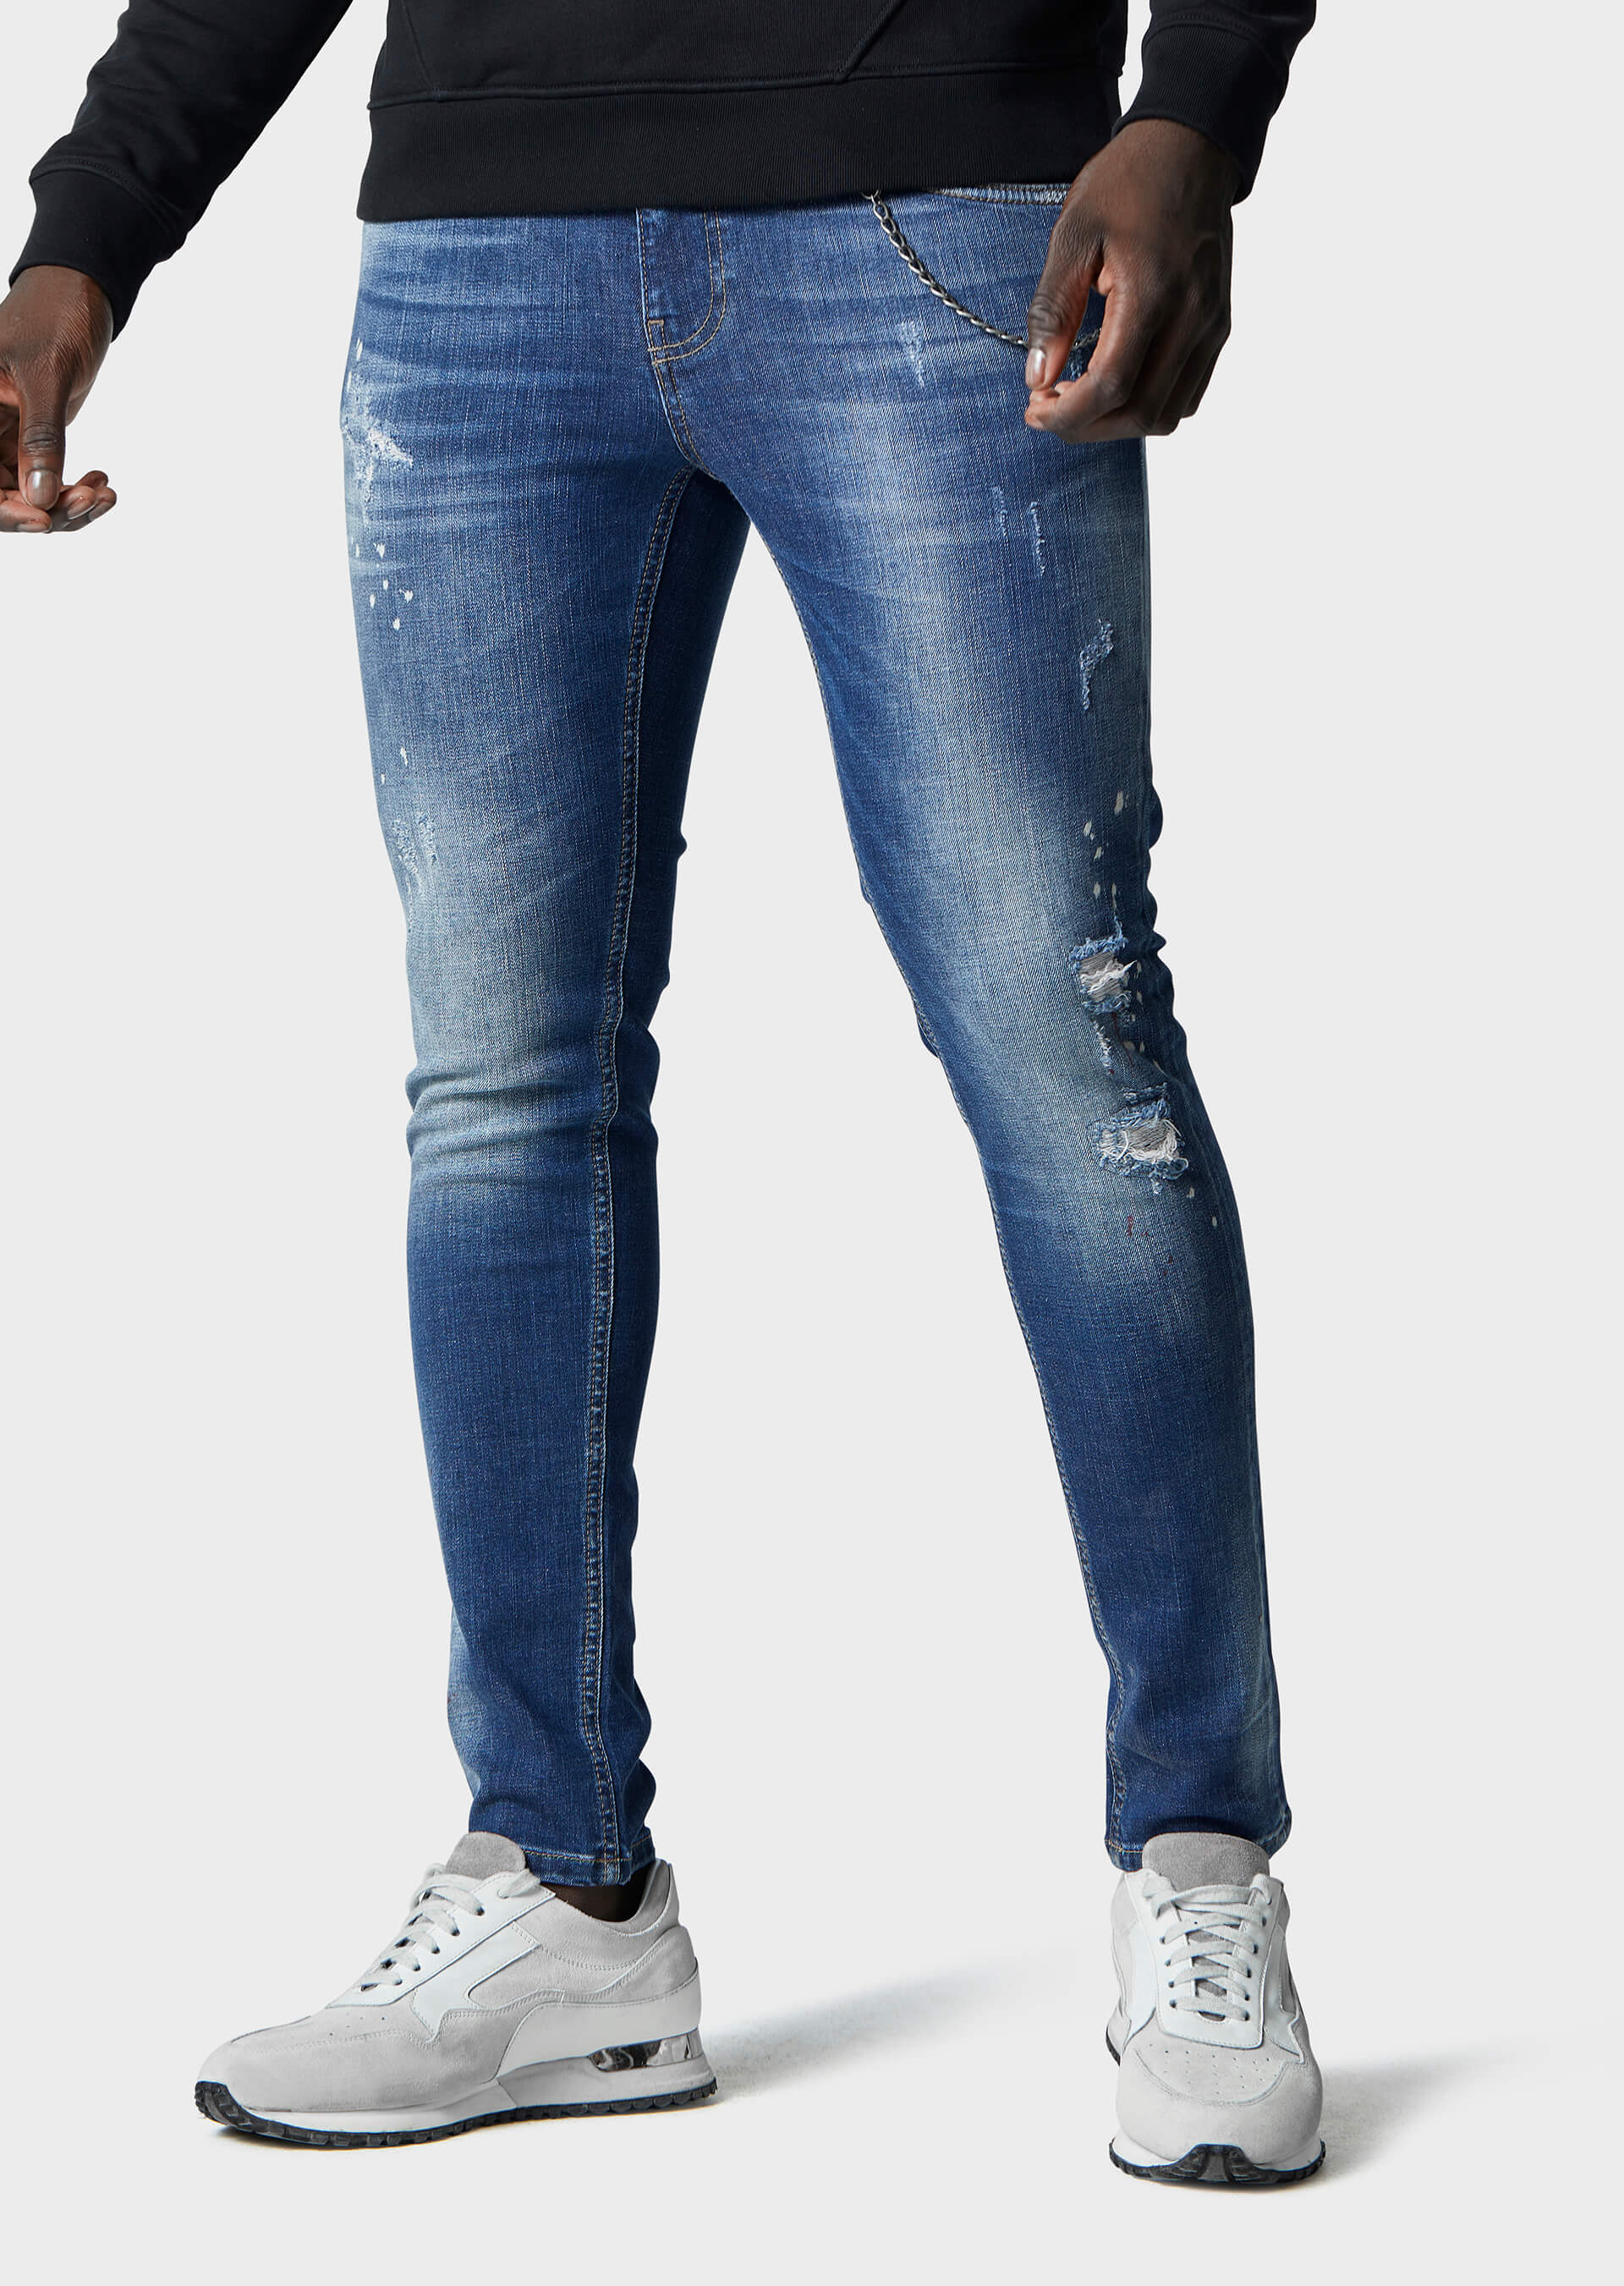 Moriarty COB 719 Slim Fit Jeans second_image